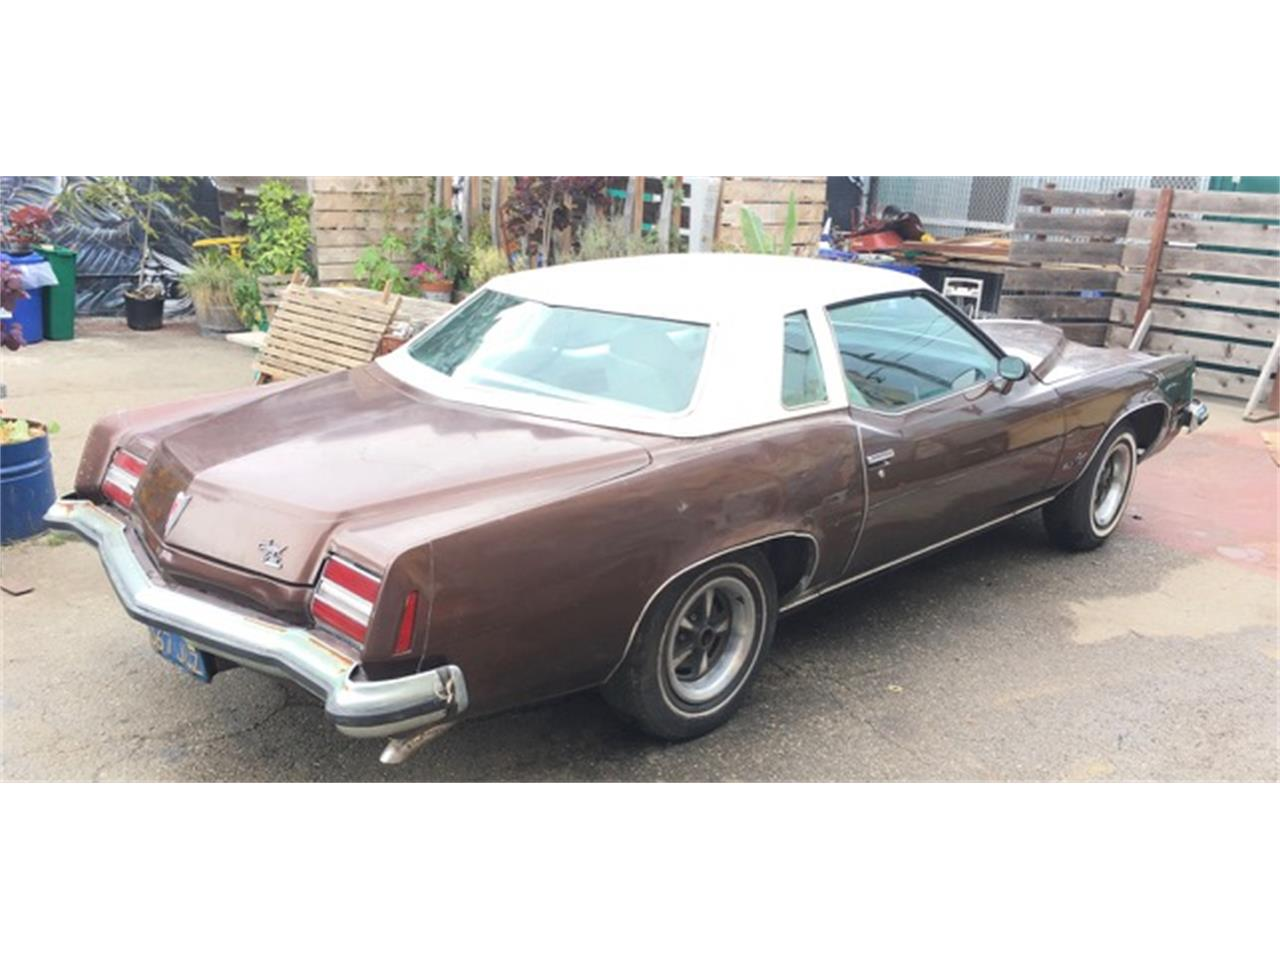 Large Picture of '73 Grand Prix - $3,900.00 Offered by Classic Cars West - Q5FN